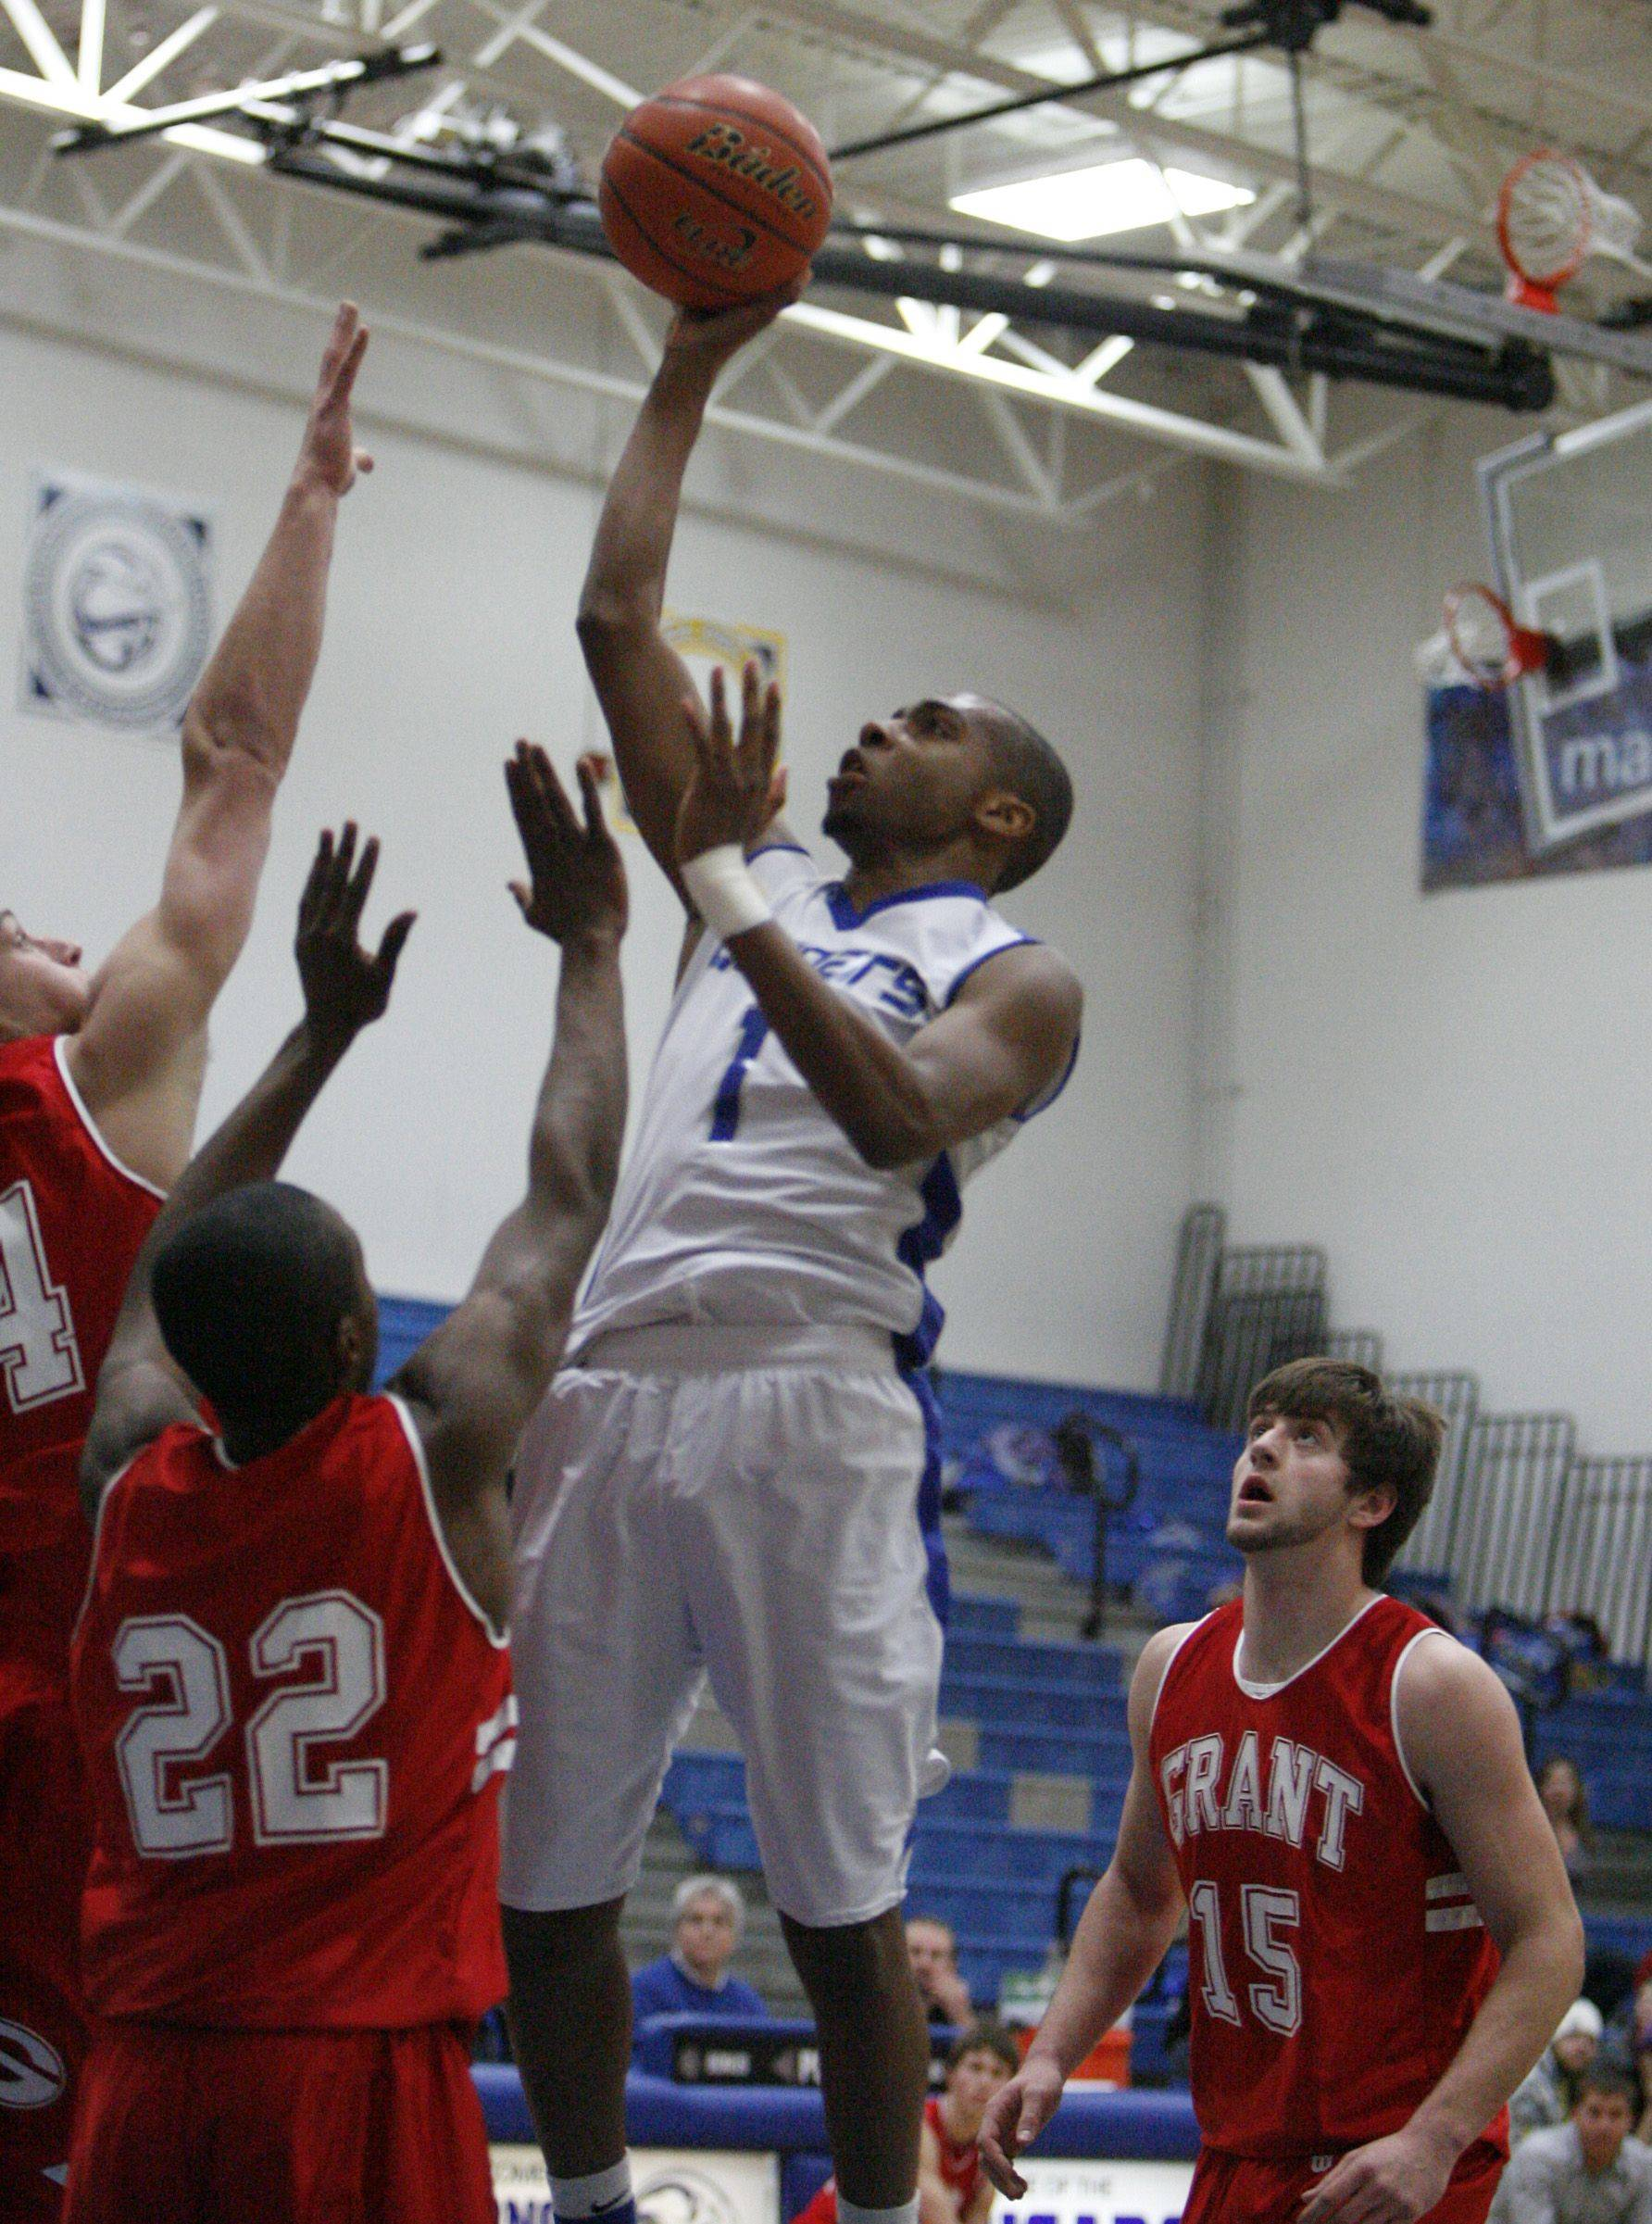 Images from the Grant at Vernon Hills boys basketball game Friday, Feb. 10.